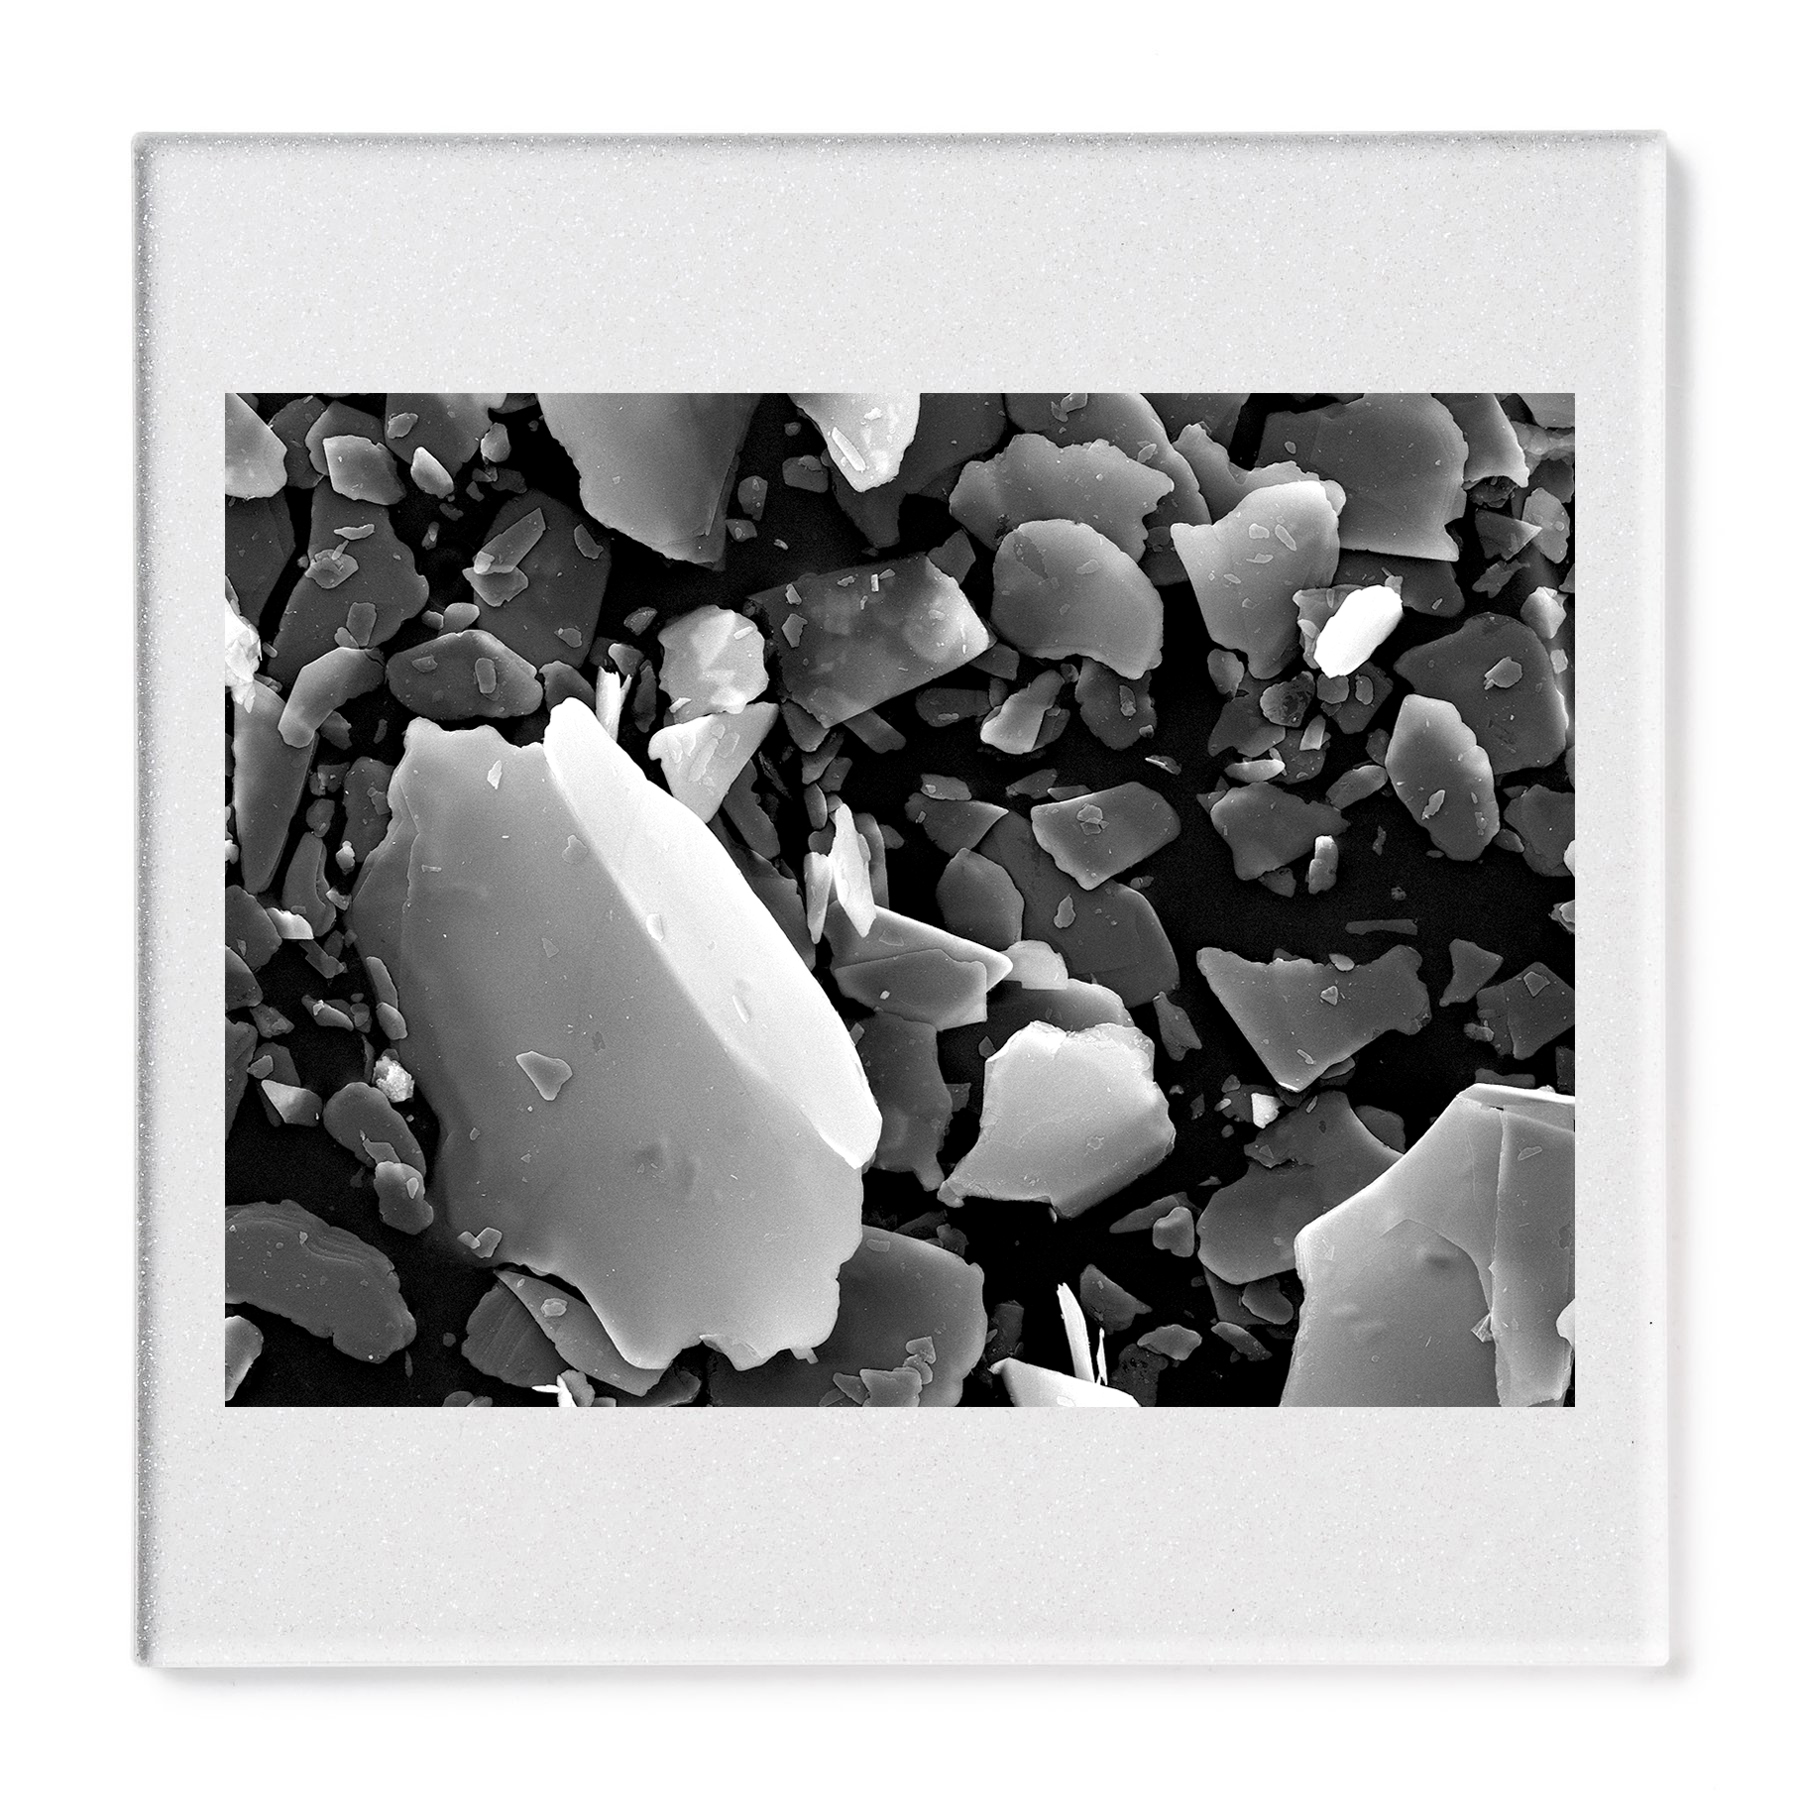 Pearl mica pigment #2. Gelatin silver print mounted on acrylic. 2015